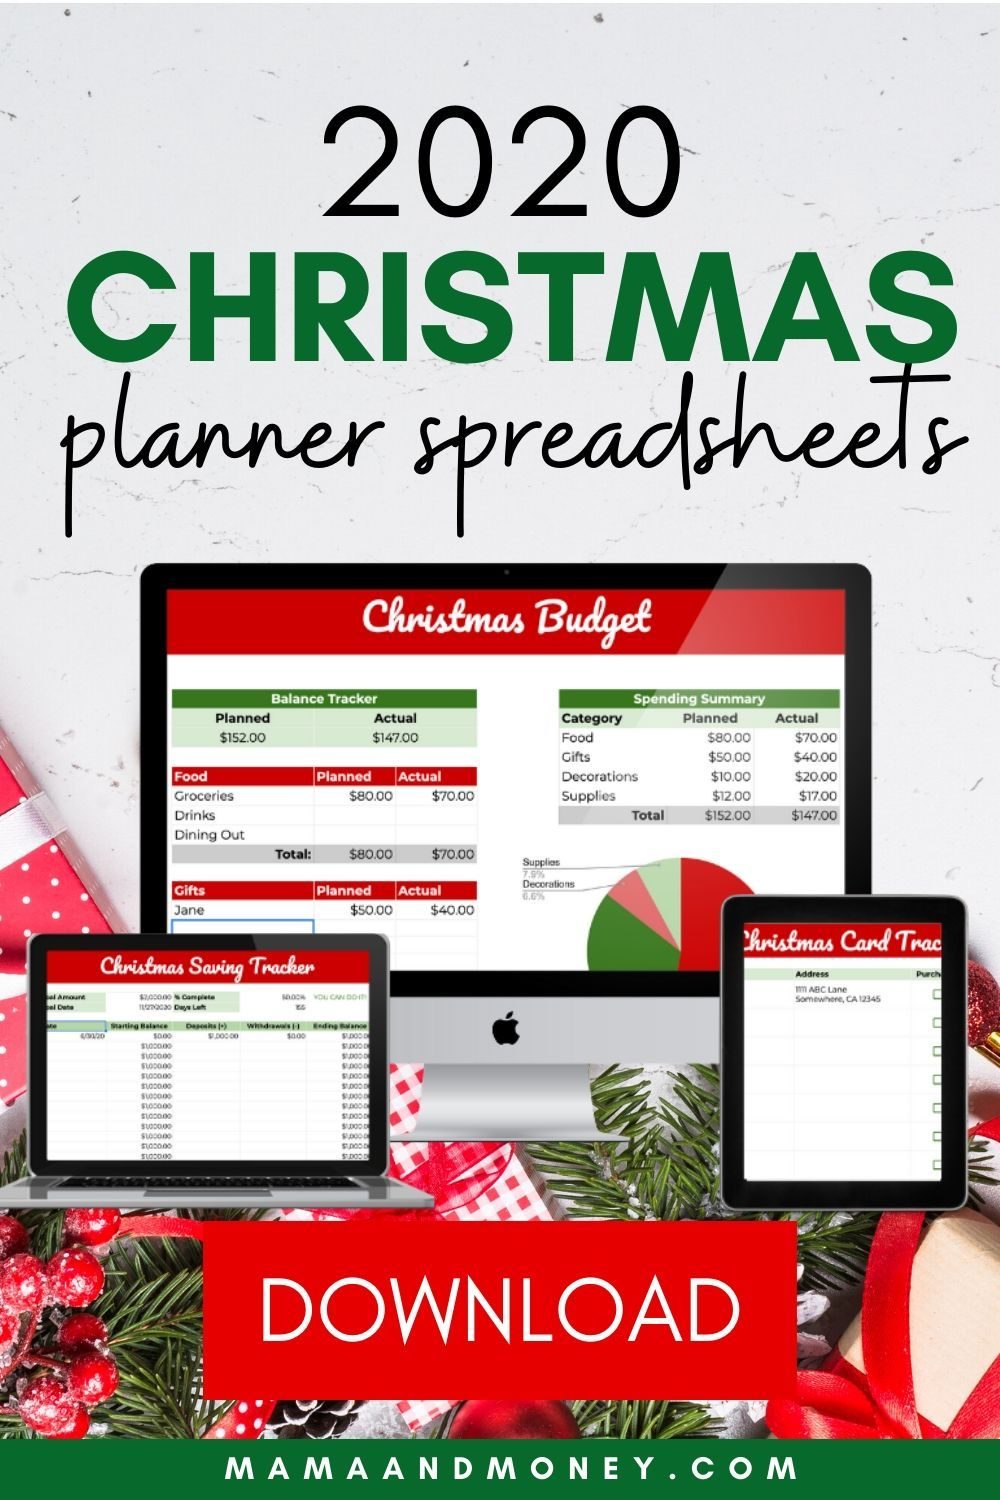 OMG! Have you seen these Christmas budget spreadsheets! They are literally everything that you need to start planning and saving for Christmas. I'm using them for my holiday planning. Check them out! #christmas #budget #christmasbudget #frugal #holidaybudget #christmasplanning #holidayplanner